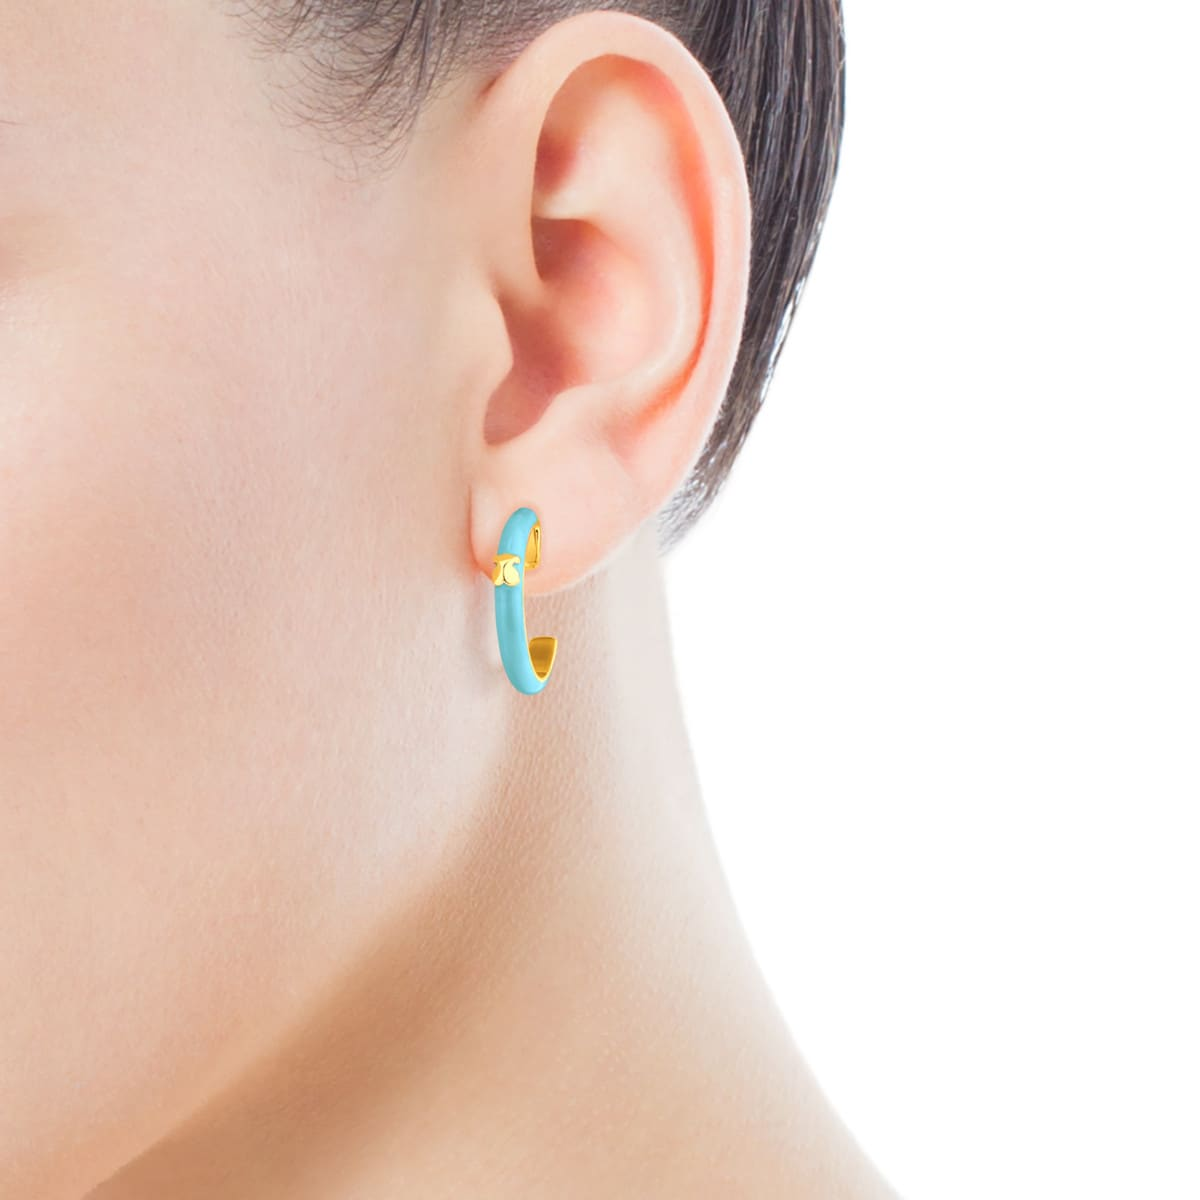 Vermeil Silver Cocktail Earrings with Enamel